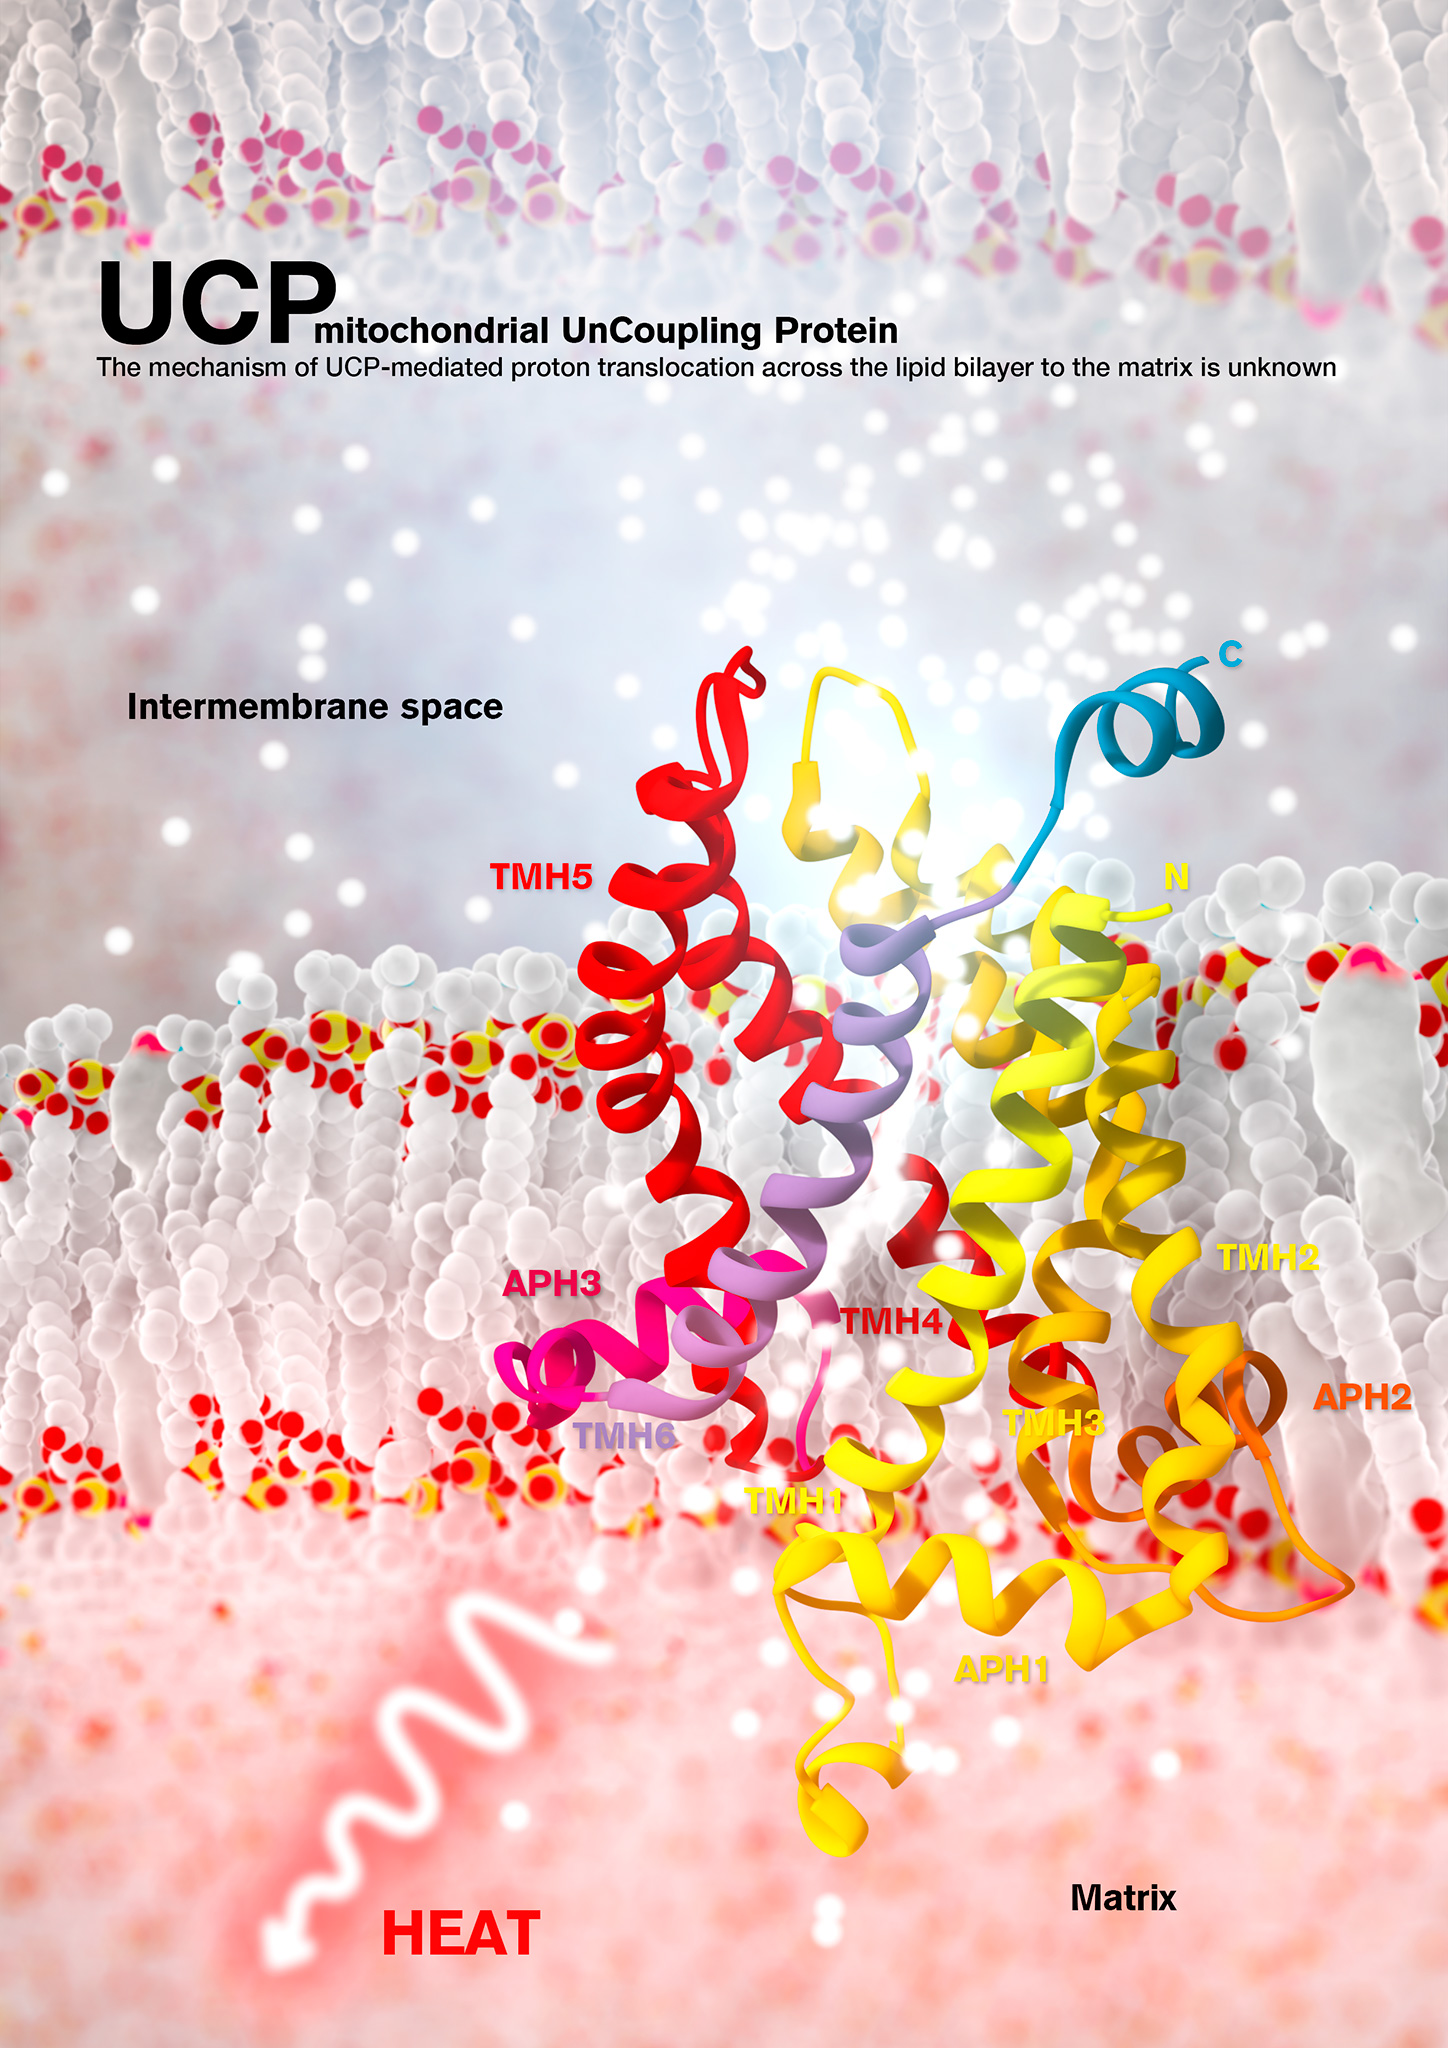 Mitochondrial uncoupling protein 2 (UCP2) is an integral membrane protein in the mitochondrial anion carrier protein family, the members of which facilitate the transport of small molecules across the mitochondrial inner membrane. When the mitochondrial respiratory complex pumps protons from the mitochondrial matrix to the intermembrane space, it builds up an electrochemical potential. A fraction of this electrochemical potential is dissipated as heat, in a process involving leakage of protons back to the matrix. This leakage, or 'uncoupling' of the proton electrochemical potential, is mediated primarily by uncoupling proteins.